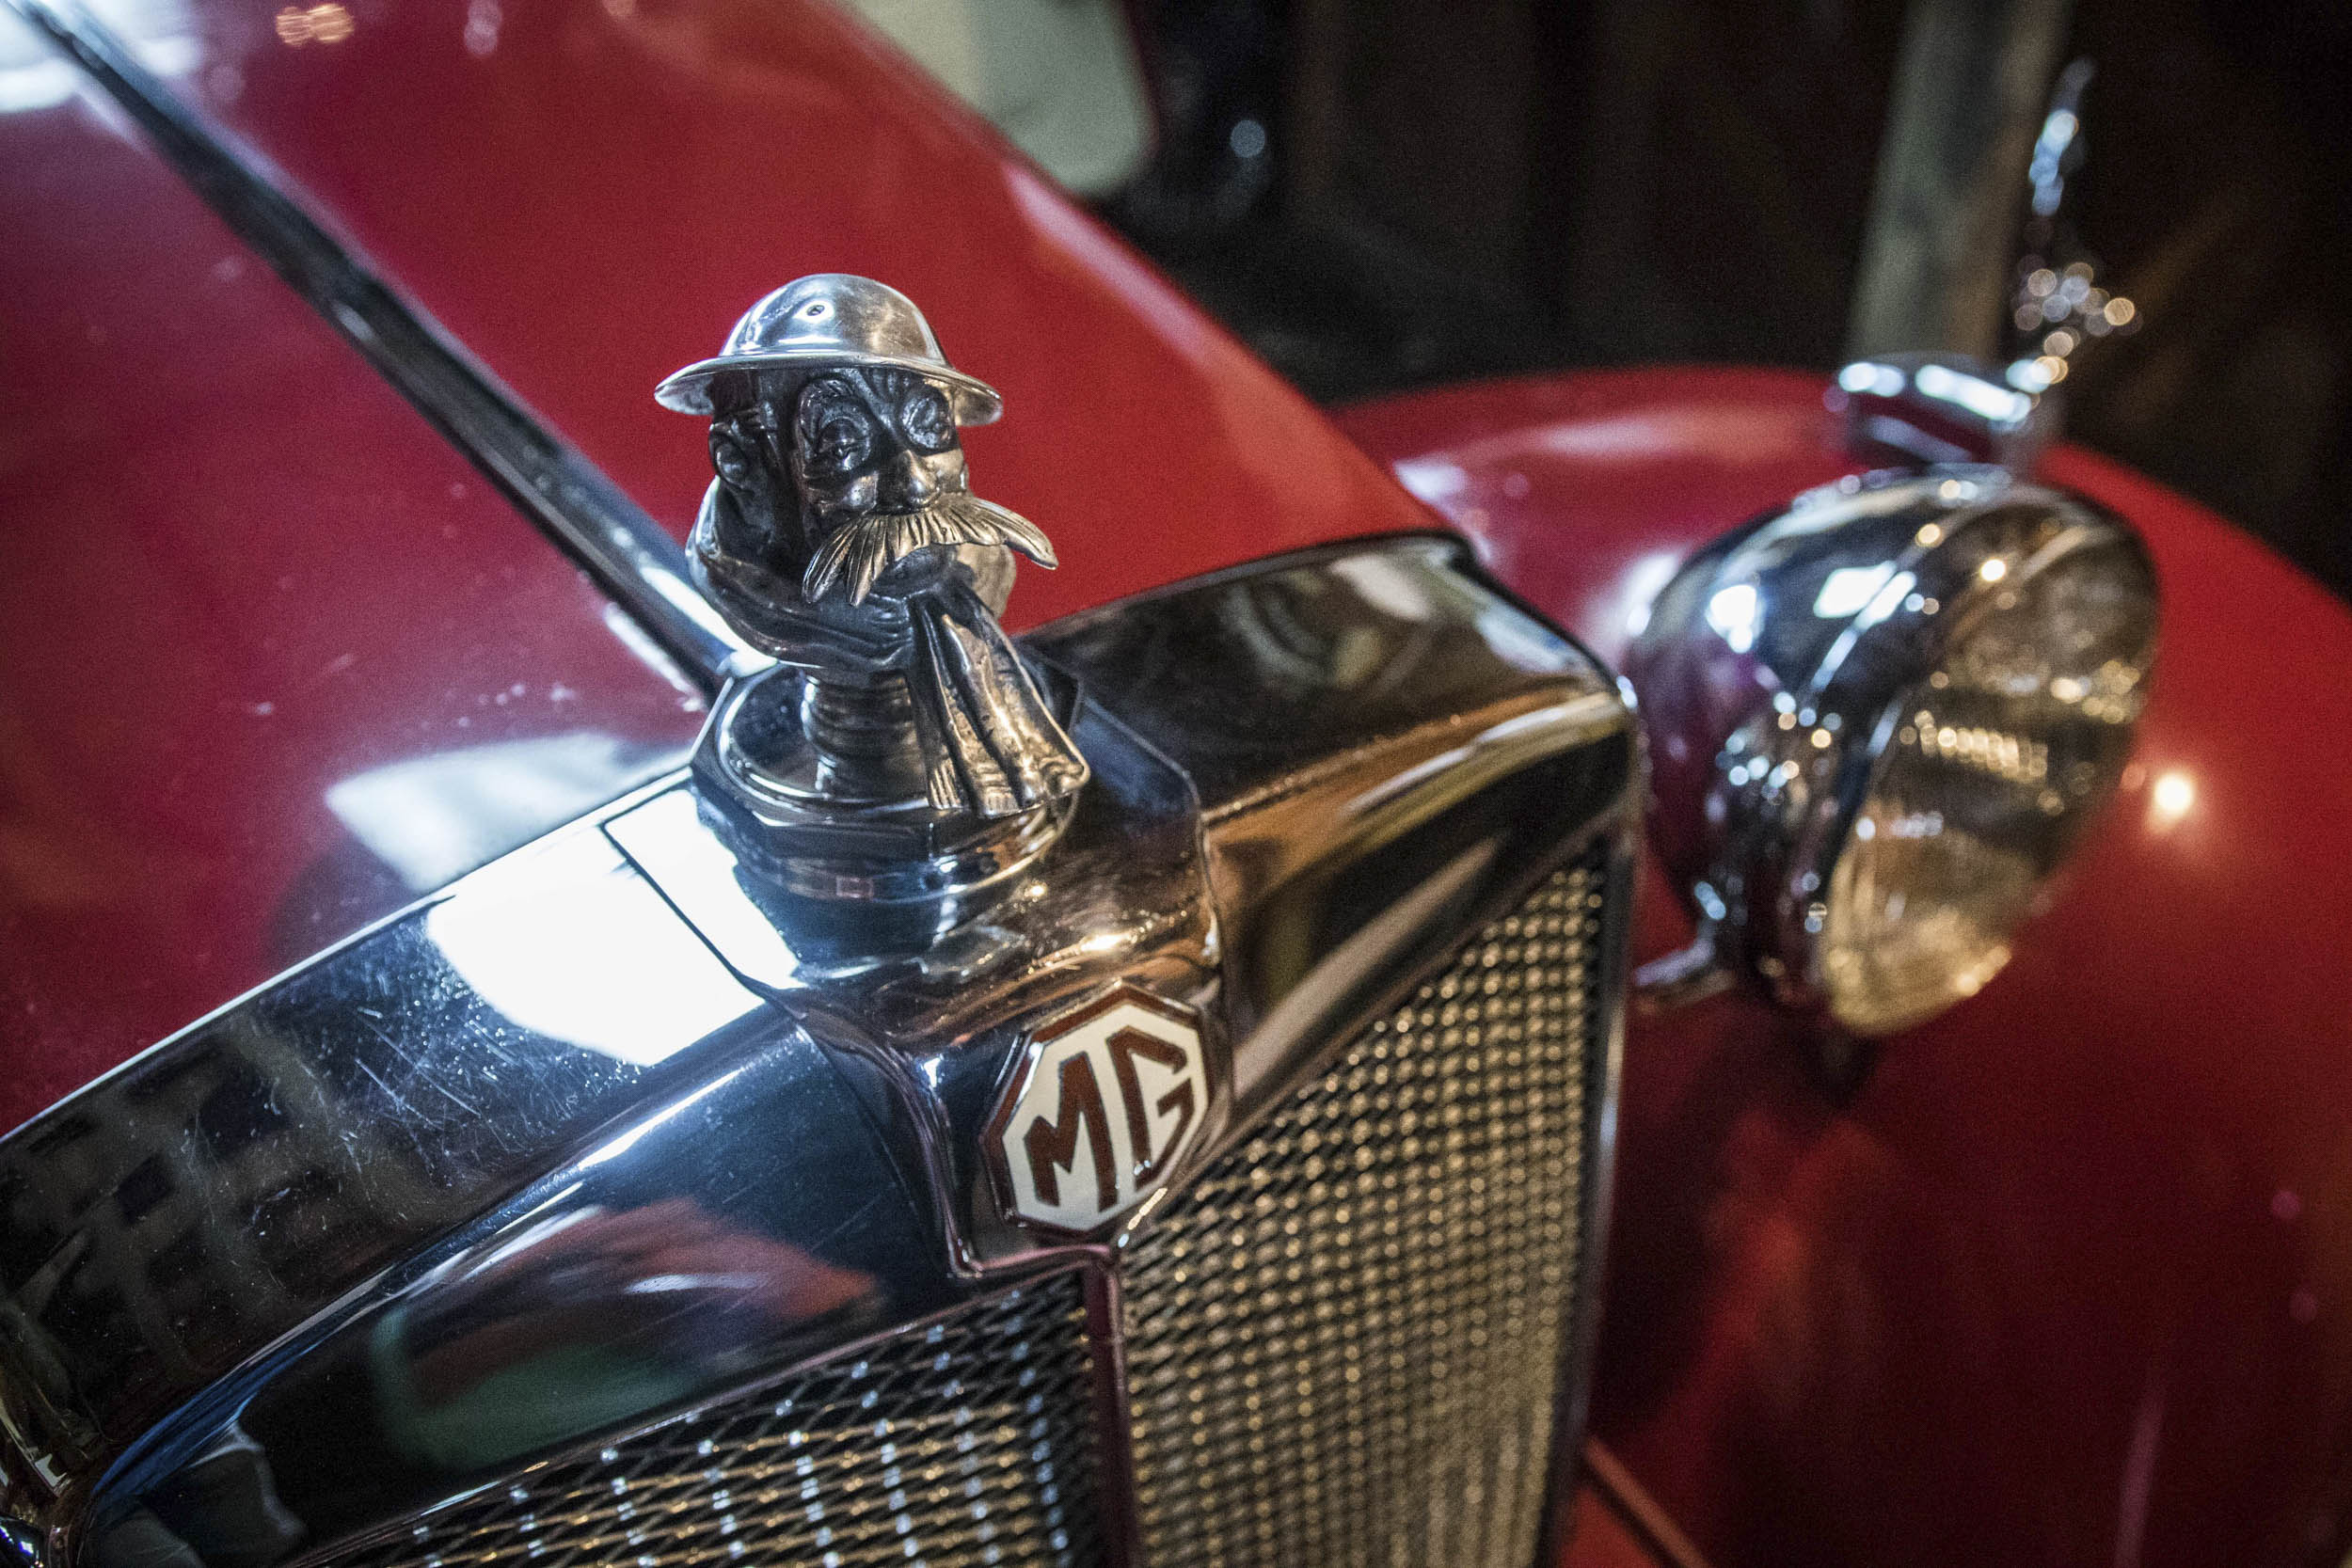 "The hood ornament atop the radiator of Newby's modified 1954 MG TD is the spitting image of Old Bill, the grizzled old ""Tommy"" war veteran sketched by WWI British Army cartoonist Bruce Bairnsfather."